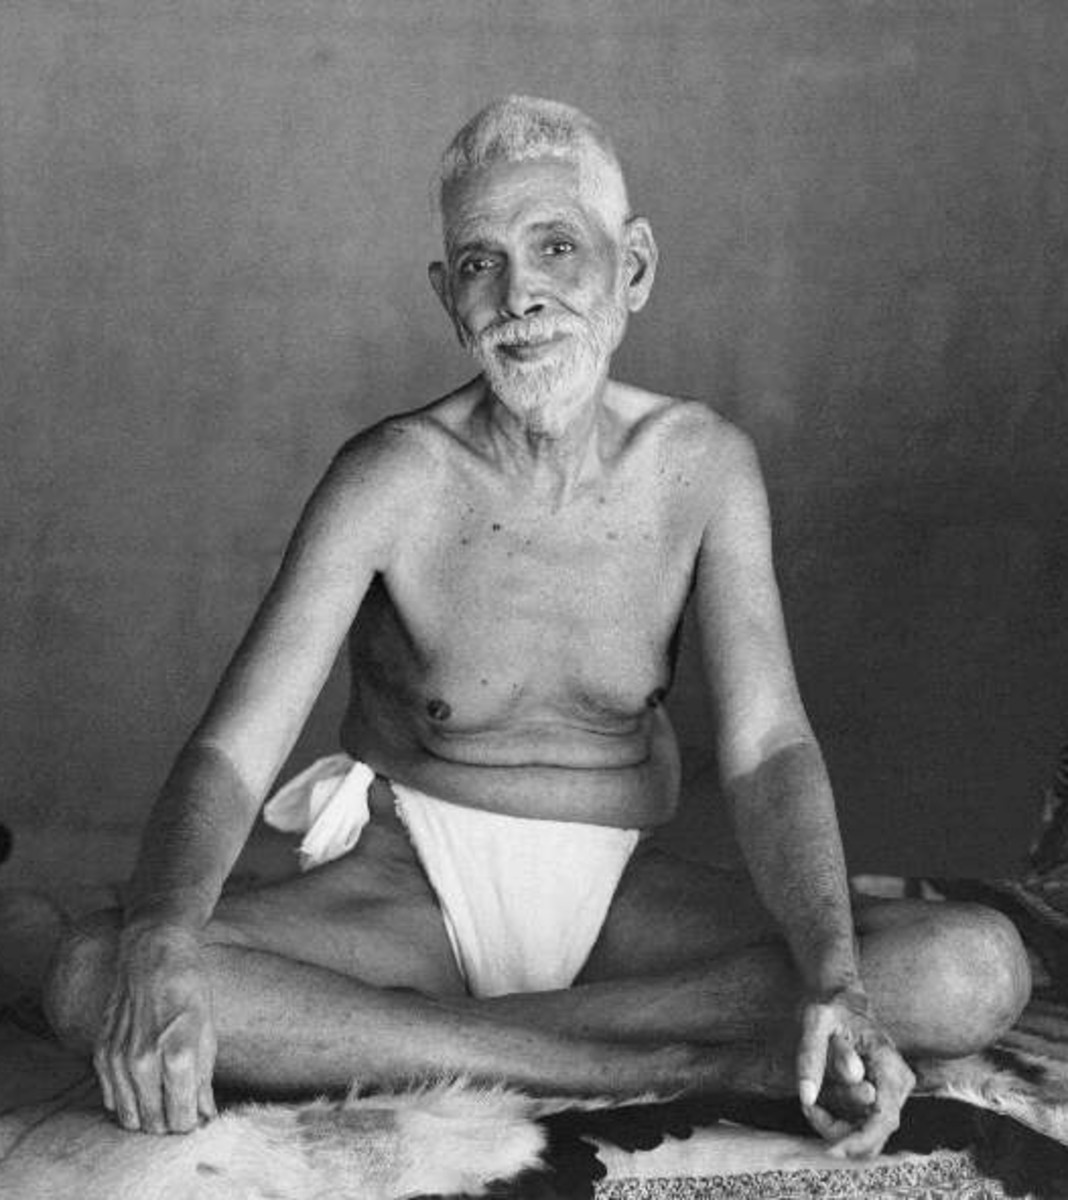 With that single experience, Ramana became Ramana Maharshi; Realization of the Truth overcame the fear of what was the untruth